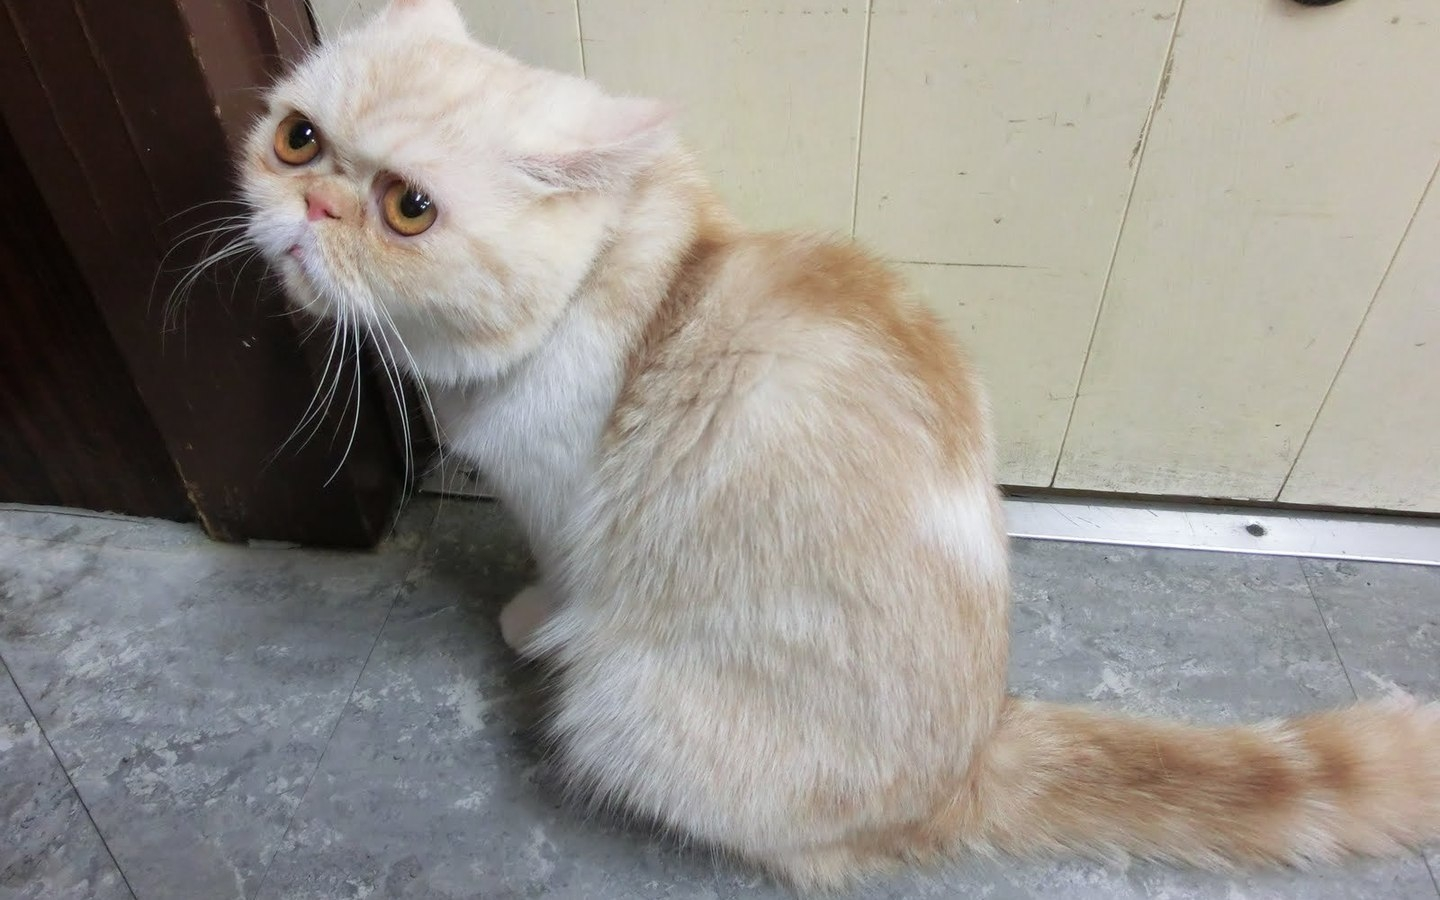 Innocent Munchkin Cat for 1440 x 900 widescreen resolution